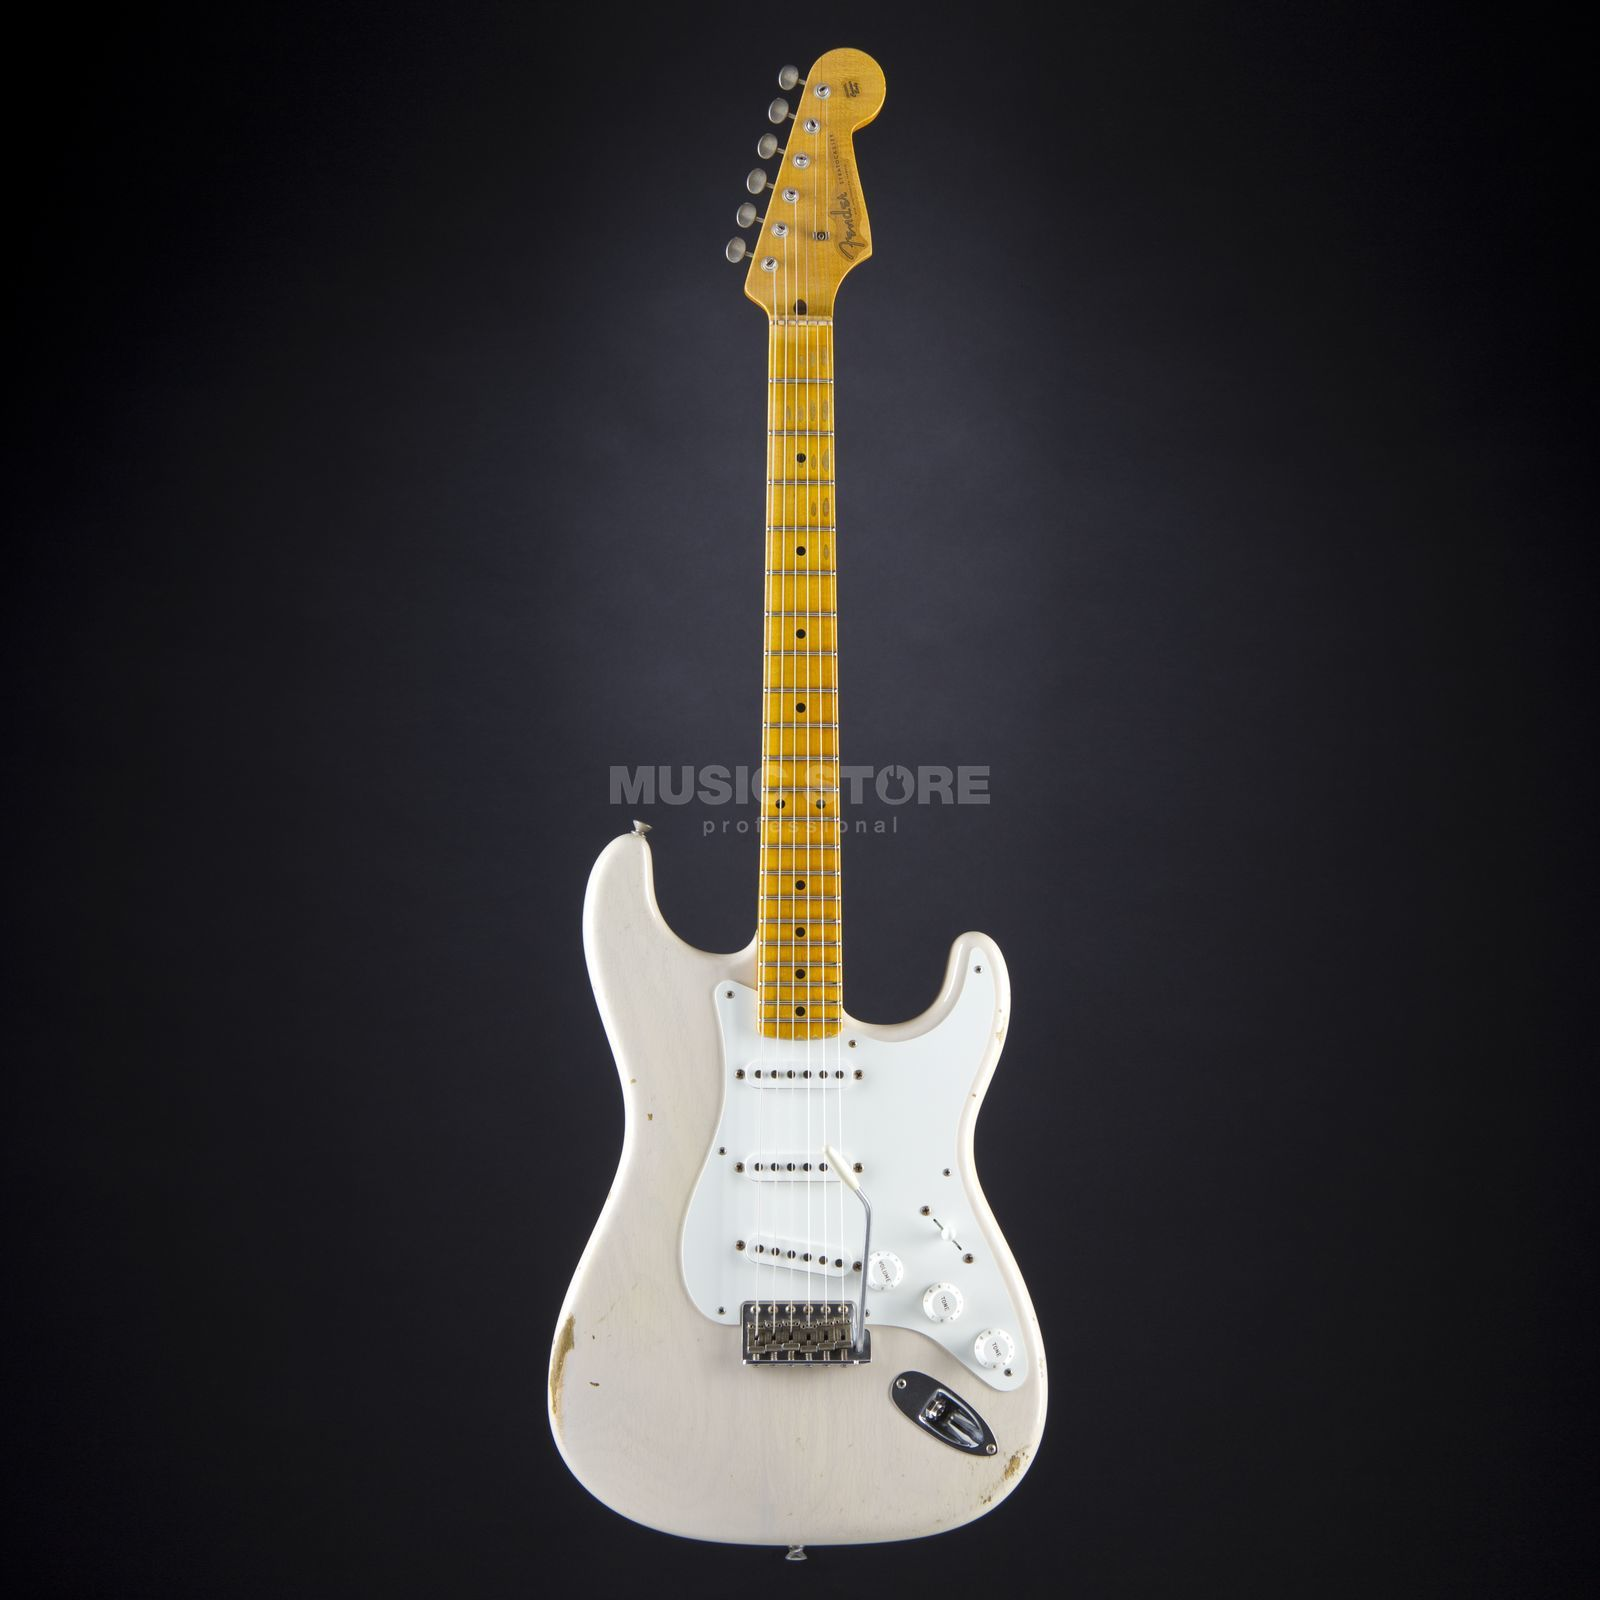 Fender 1955 Relic Stratocaster Dirty White Blonde #CZ520102 Produktbillede